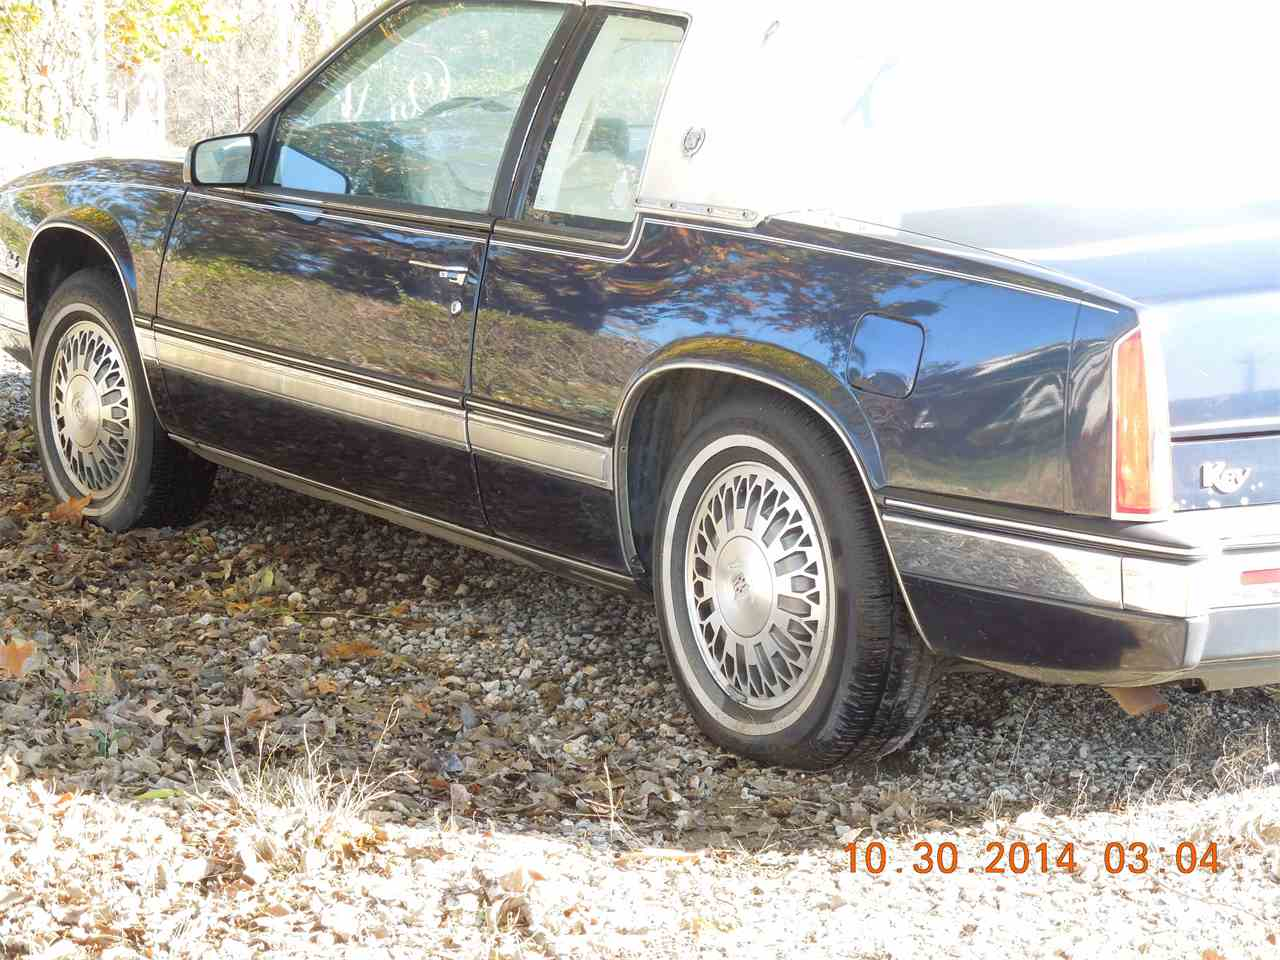 Large Picture of 1989 Eldorado located in LOCKWOOD Missouri - $1,495.00 Offered by a Private Seller - E88R